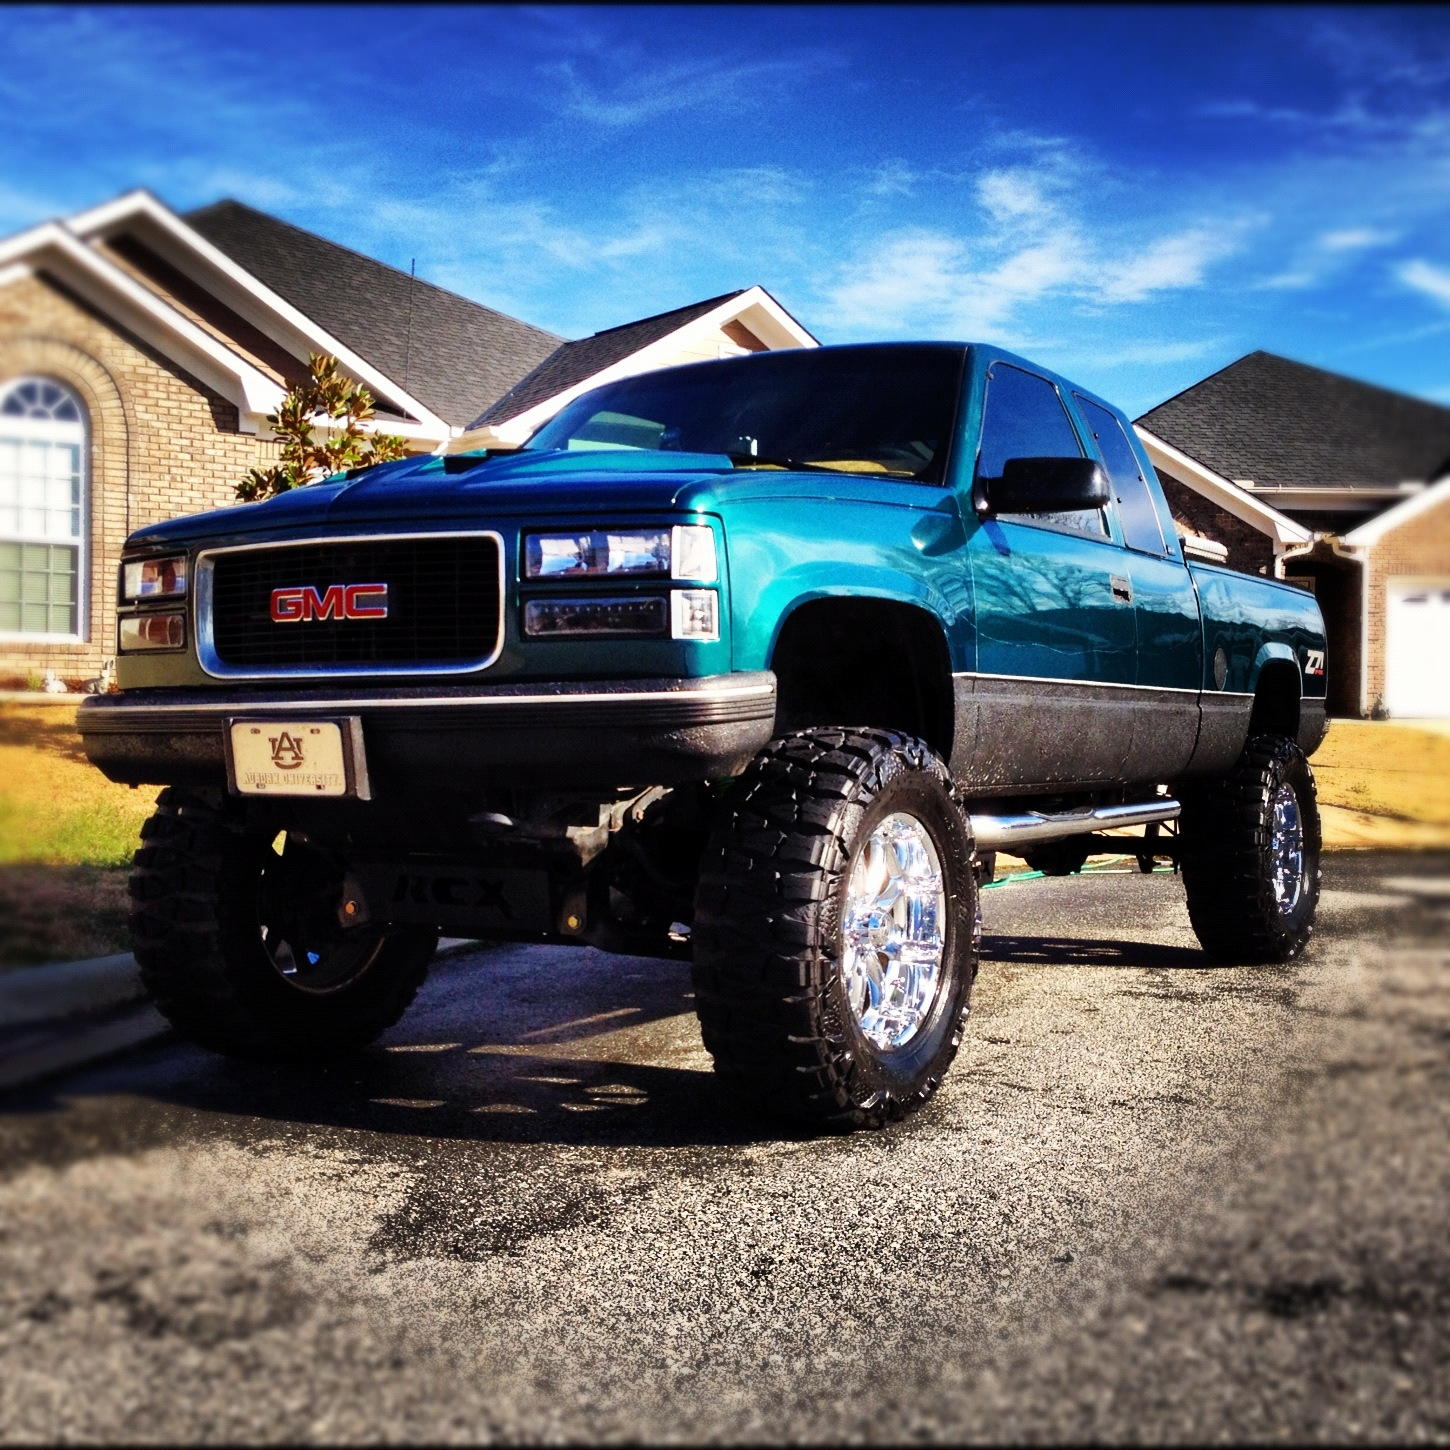 1997 Gmc 1500 Regular Cab Interior: Jnic815's 1997 GMC Sierra 1500 Extended Cab Page 2 In